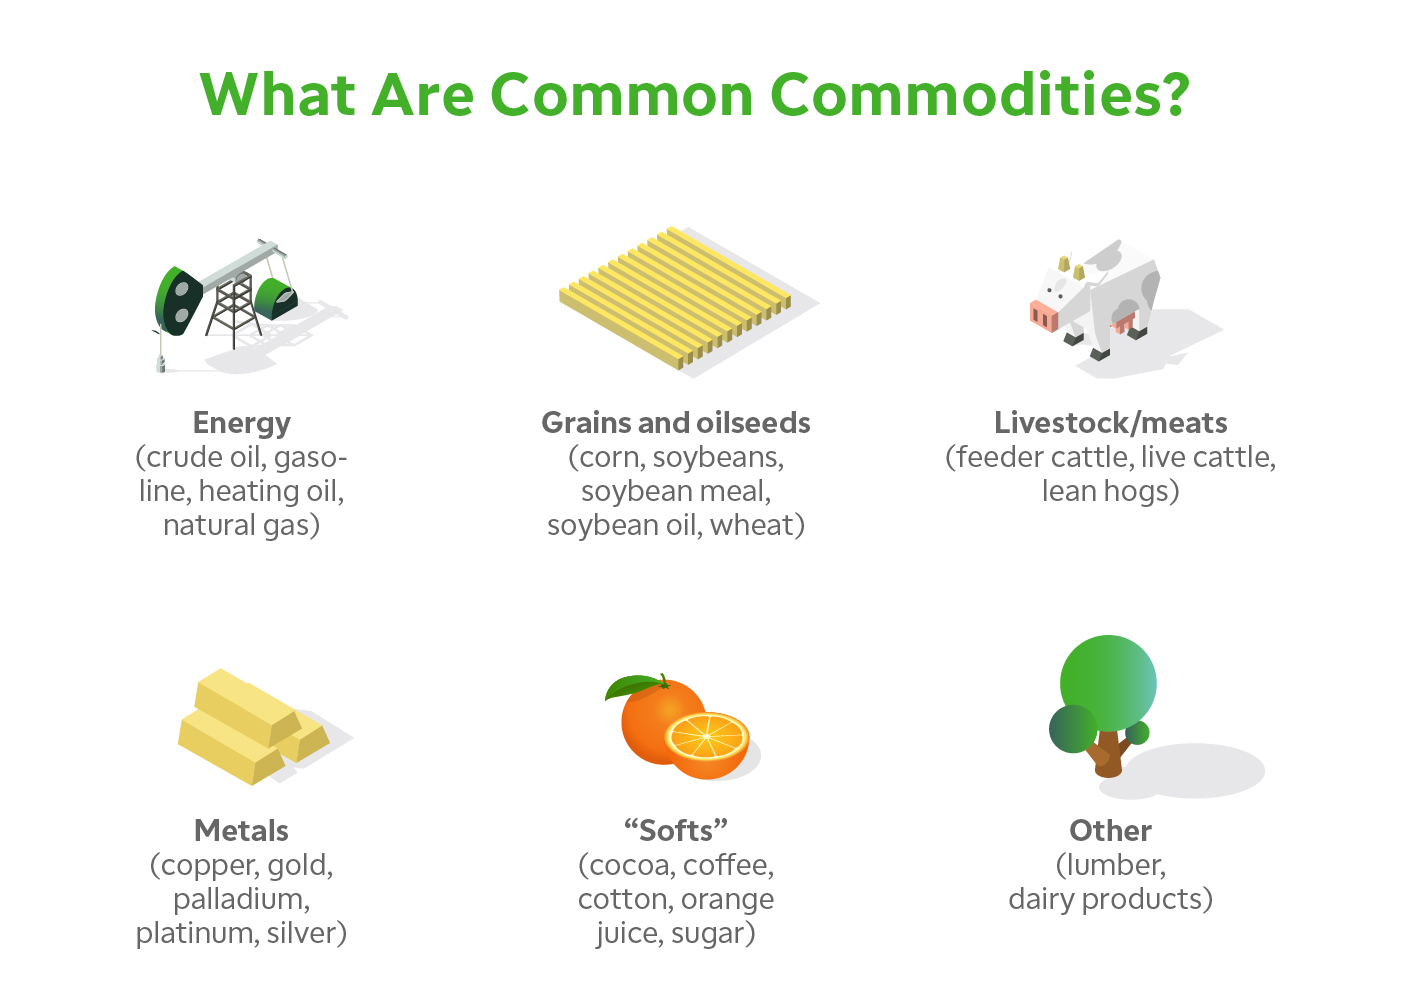 Common commodities: energy, grain, livestock, metals, softs